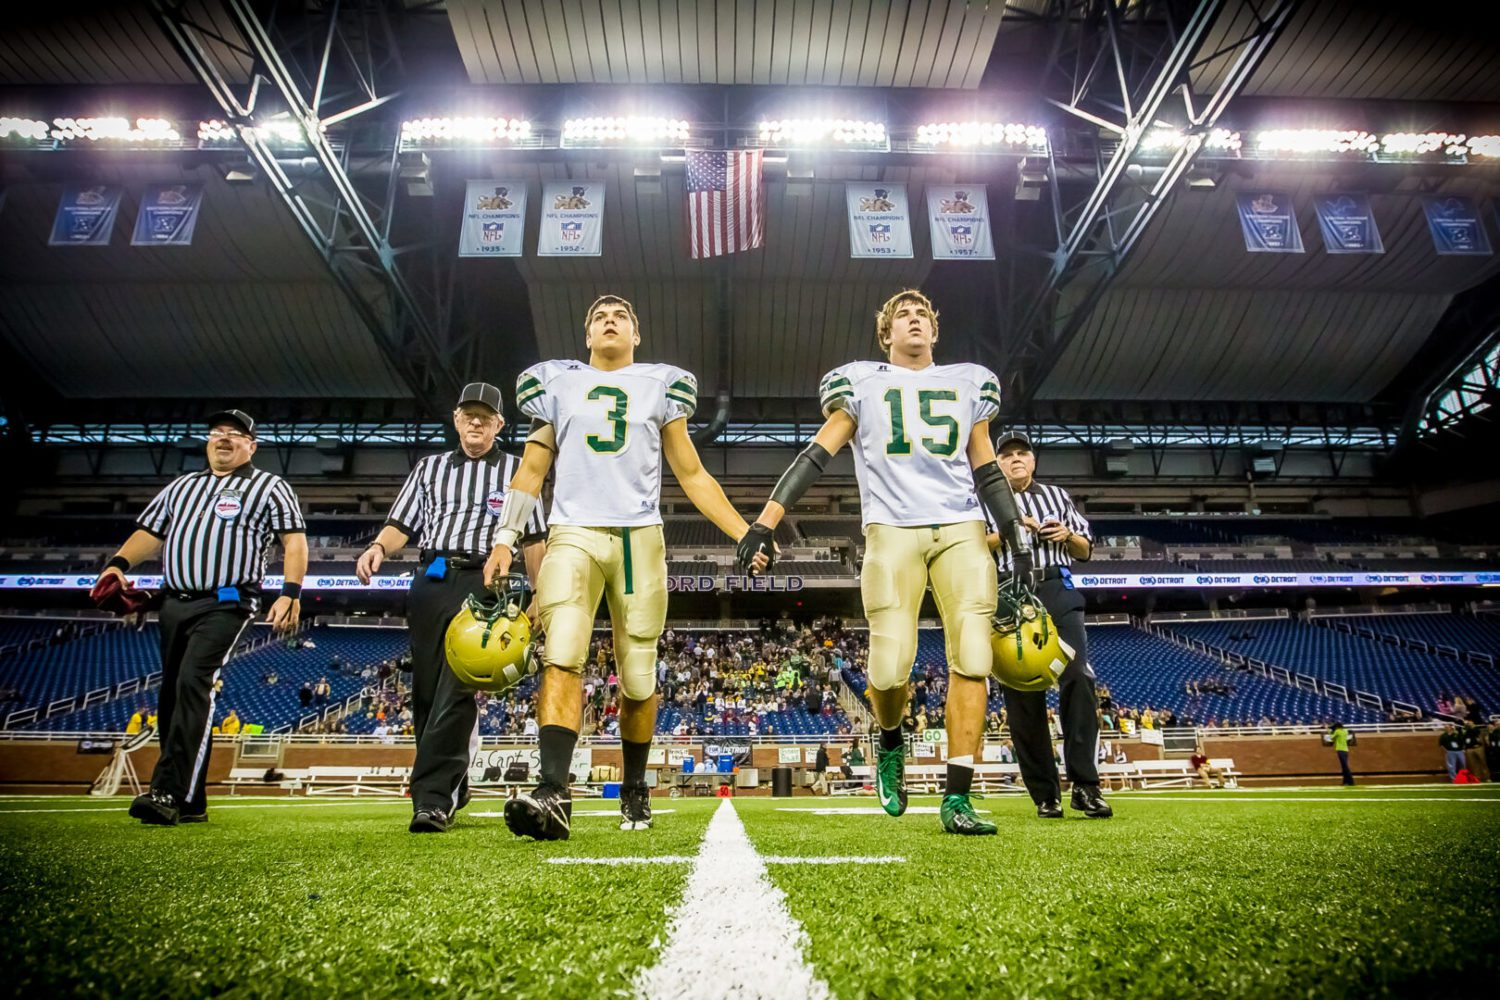 [VIDEO] Highlights from Muskegon Catholic Central's ninth state championship